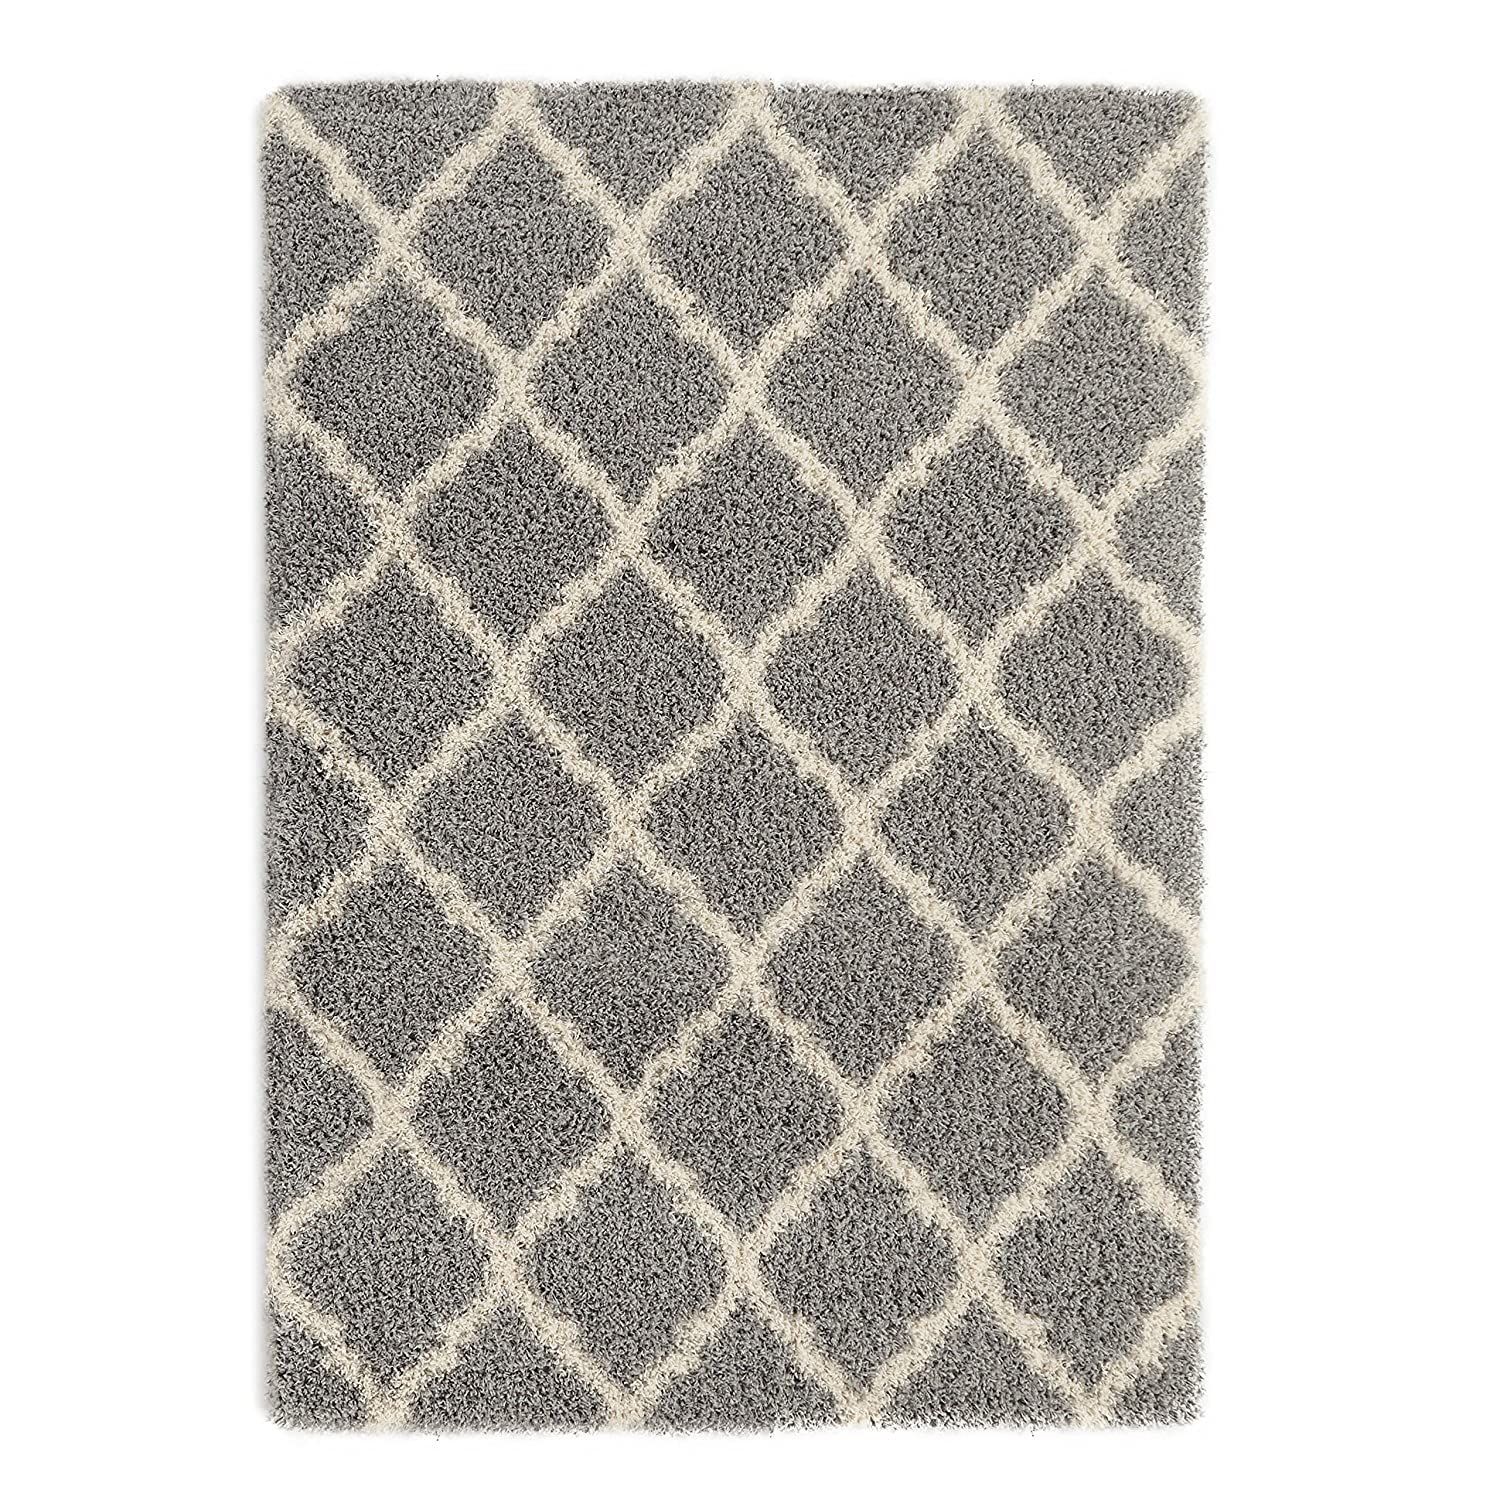 Top 5 Living Room Rugs: Buying Guide & Reviews 3